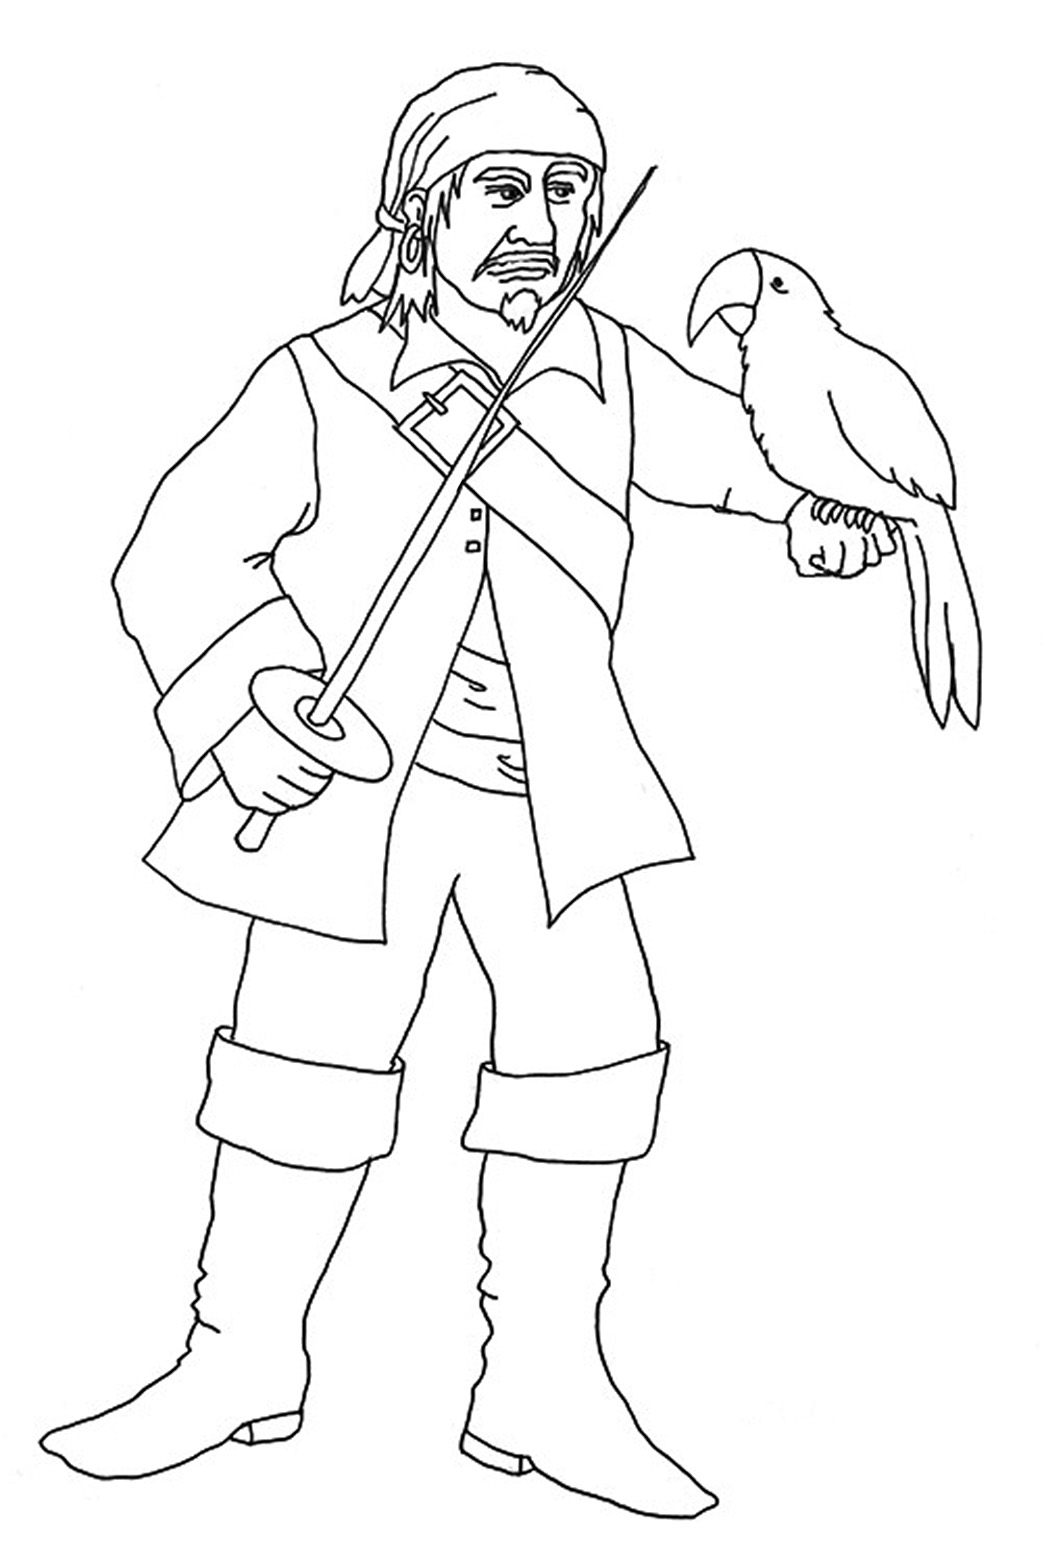 Pittsburgh Pirate Parrot Coloring Page Coloring Pages Pirate Parrot Coloring Pages